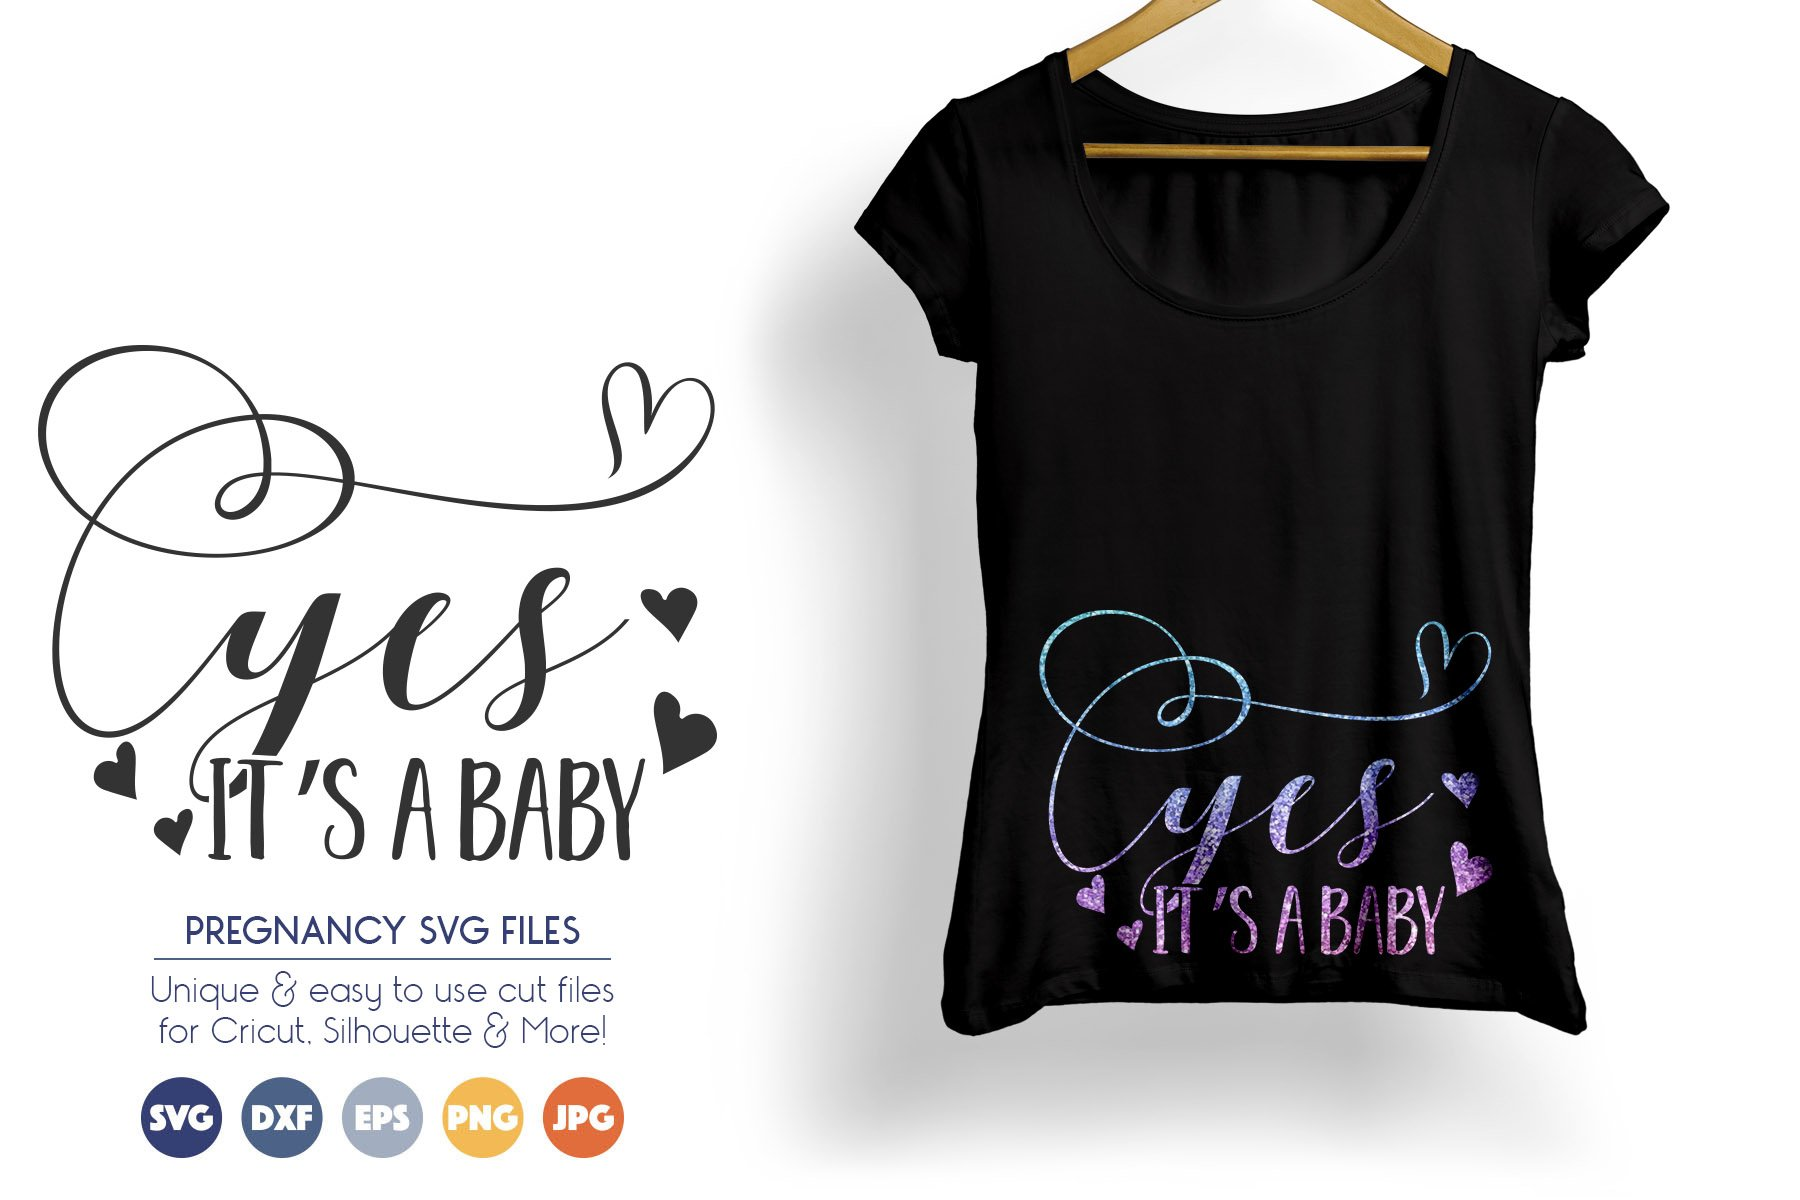 Pregnancy SVG Files - Yes, Its a Baby SVG example image 1